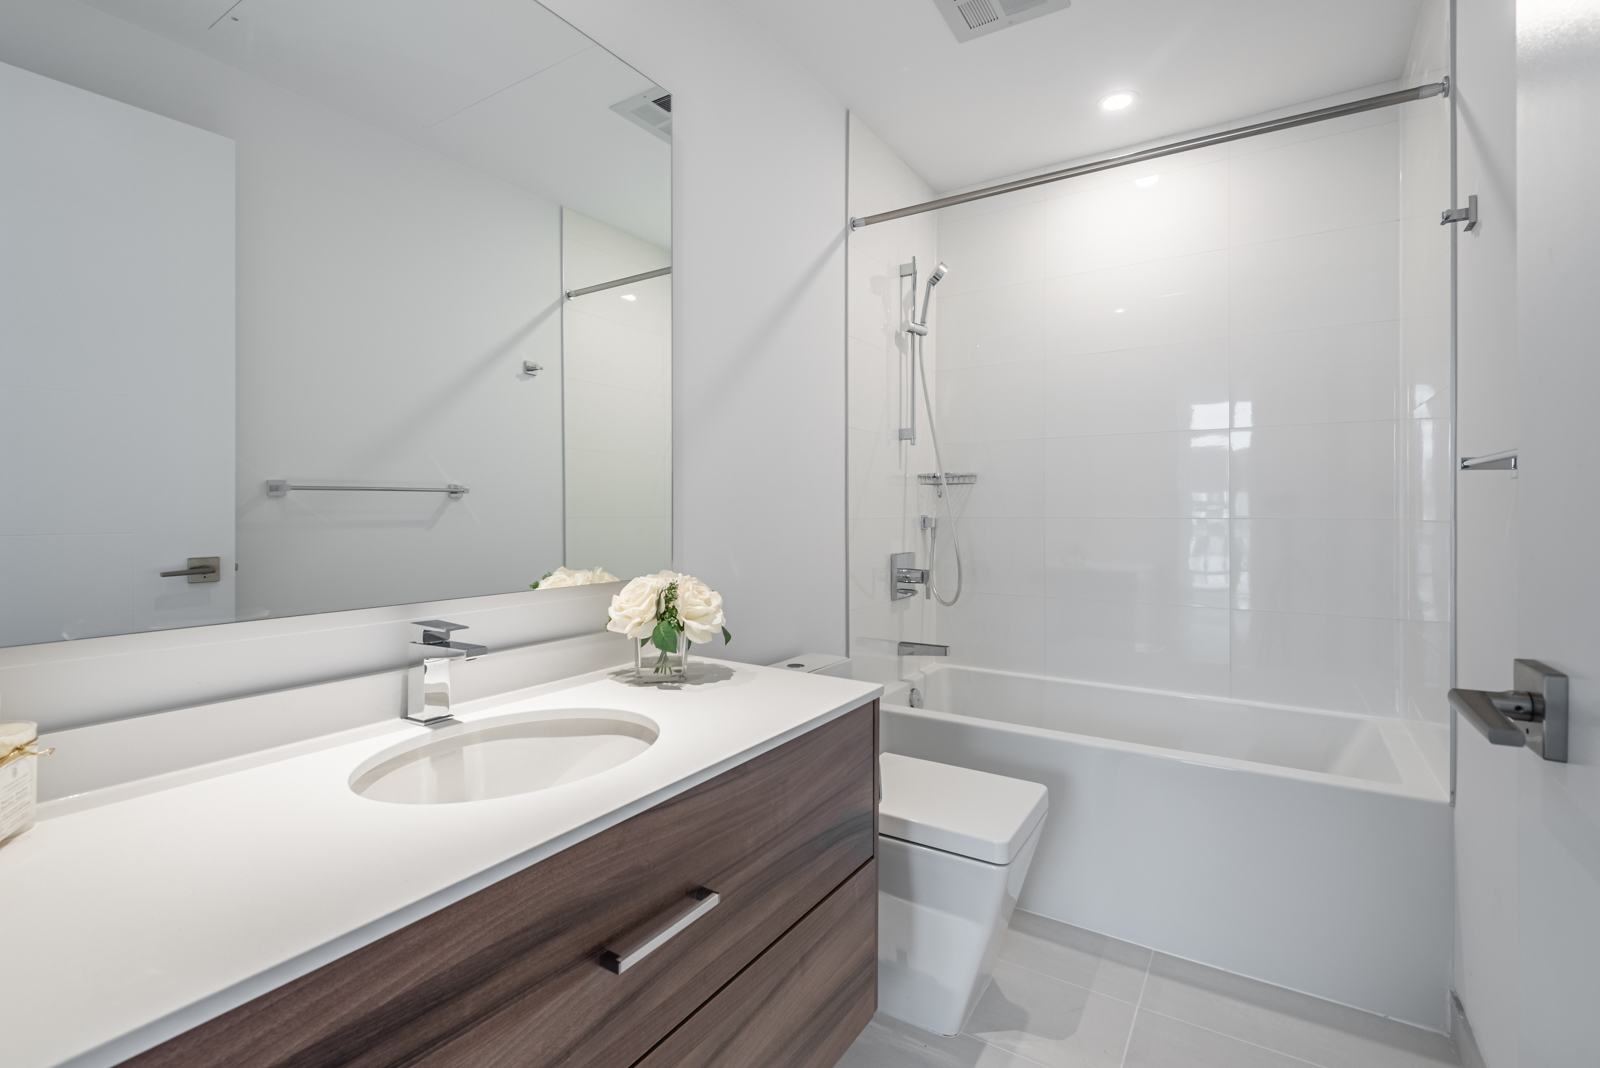 Bathroom with glistening white tiles, gray walls, soaker tub and large vanity.